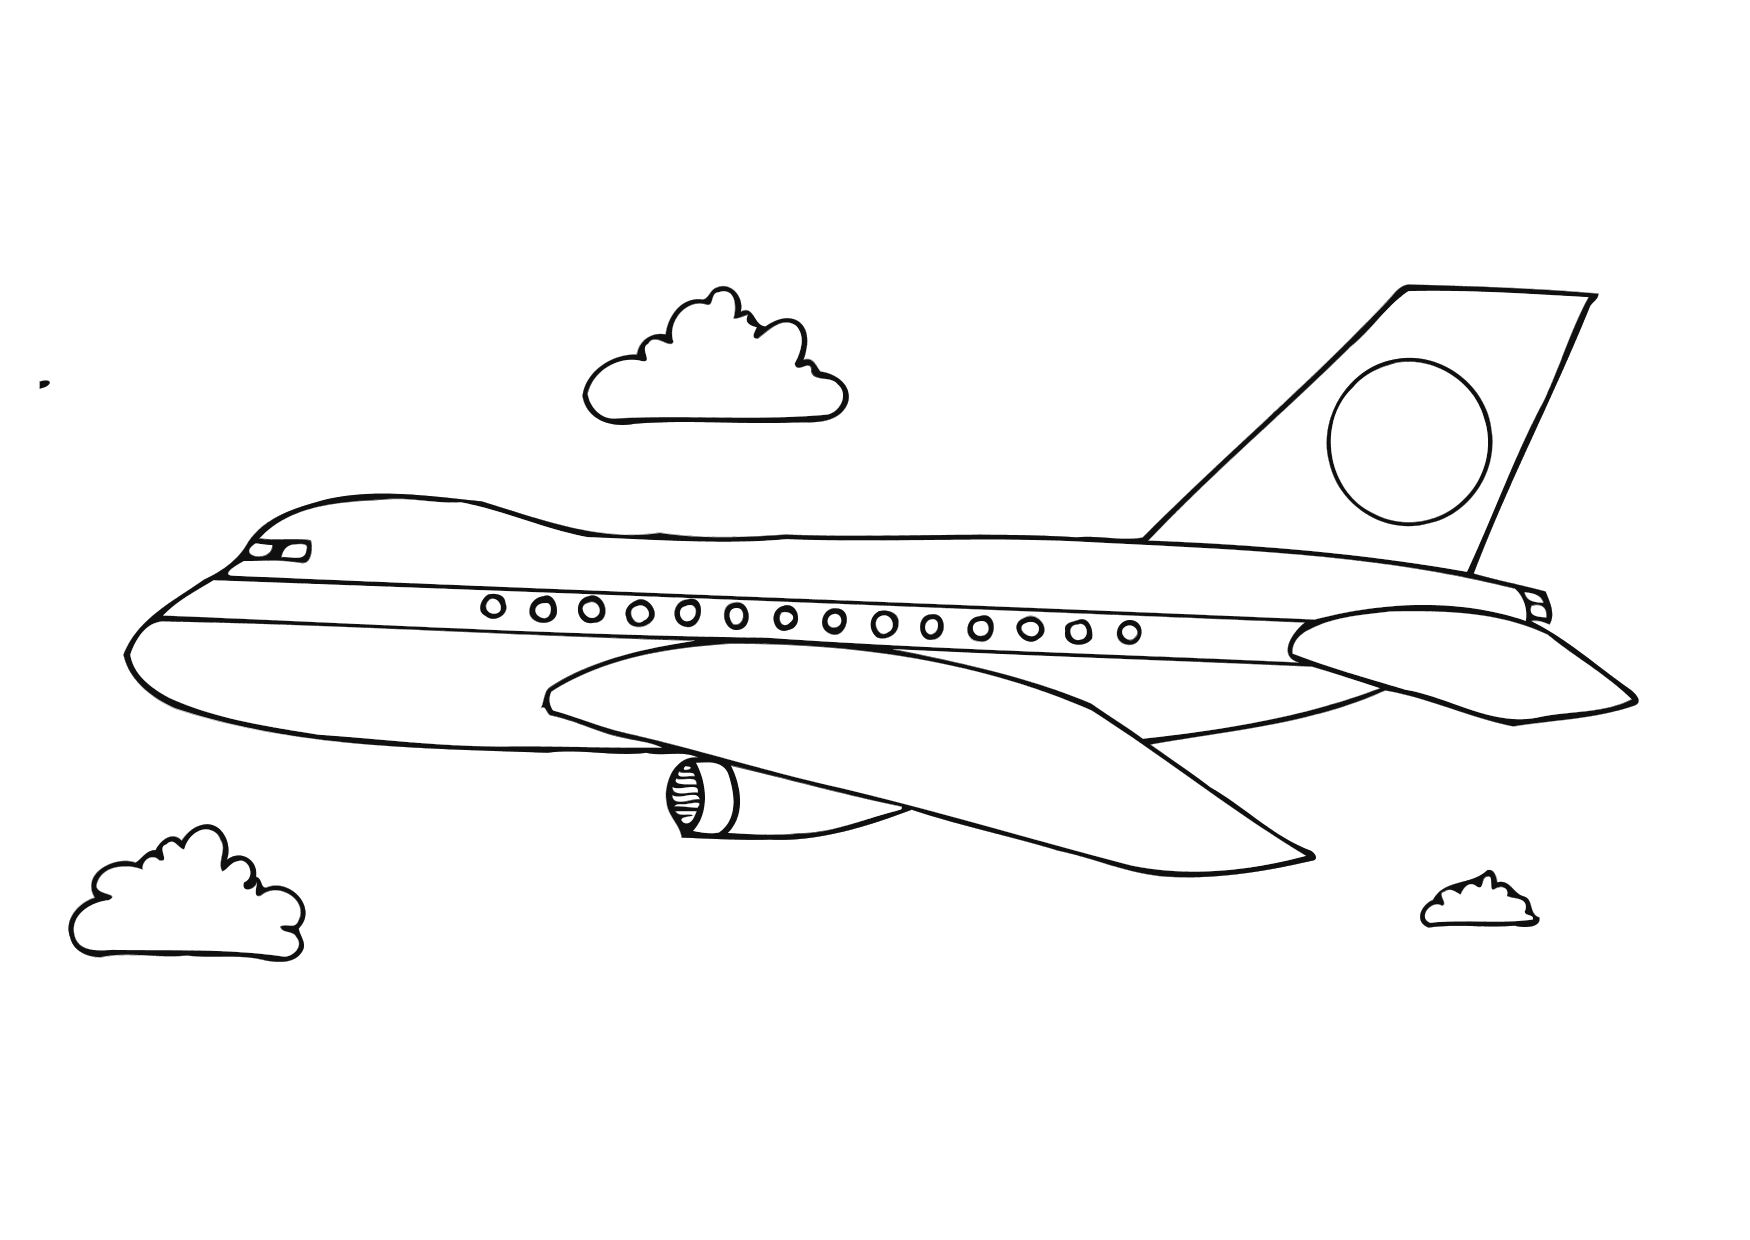 coloring book pages of airplanes - photo#5